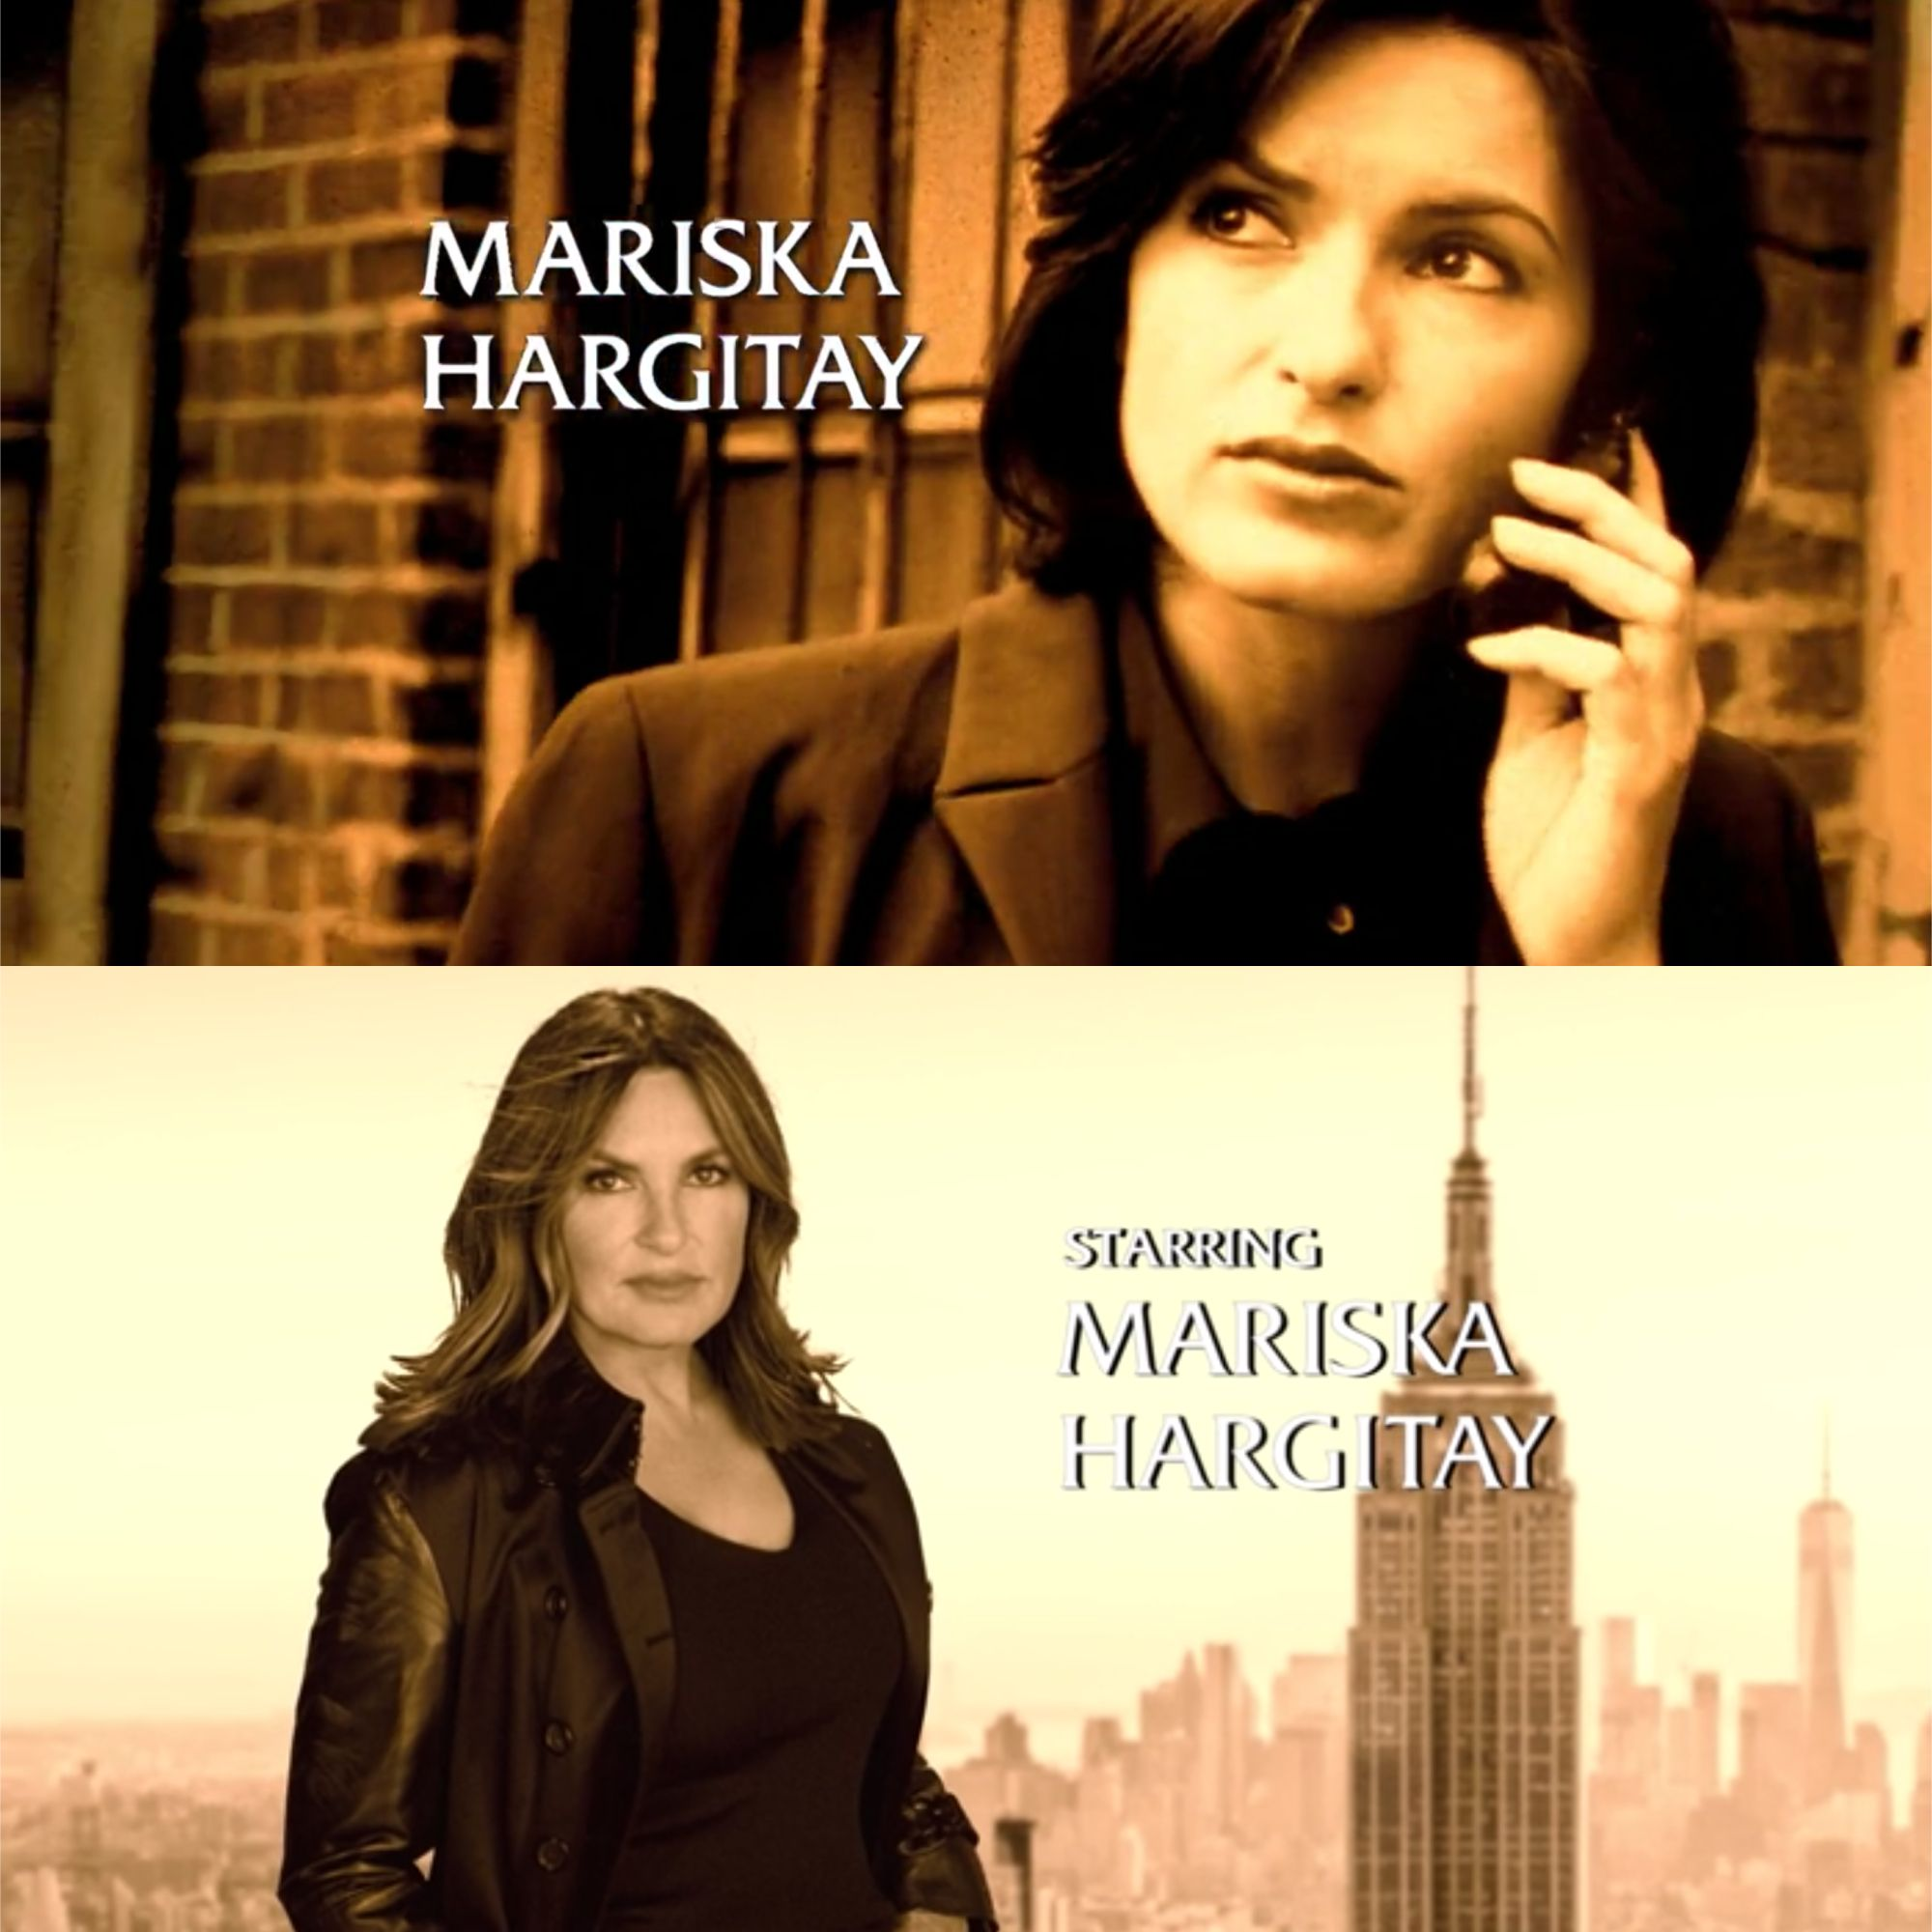 𝐋𝐀𝐖 𝐎𝐑𝐃𝐄𝐑 𝐒𝐕𝐔 On Twitter Law And Order Svu Opening Credits